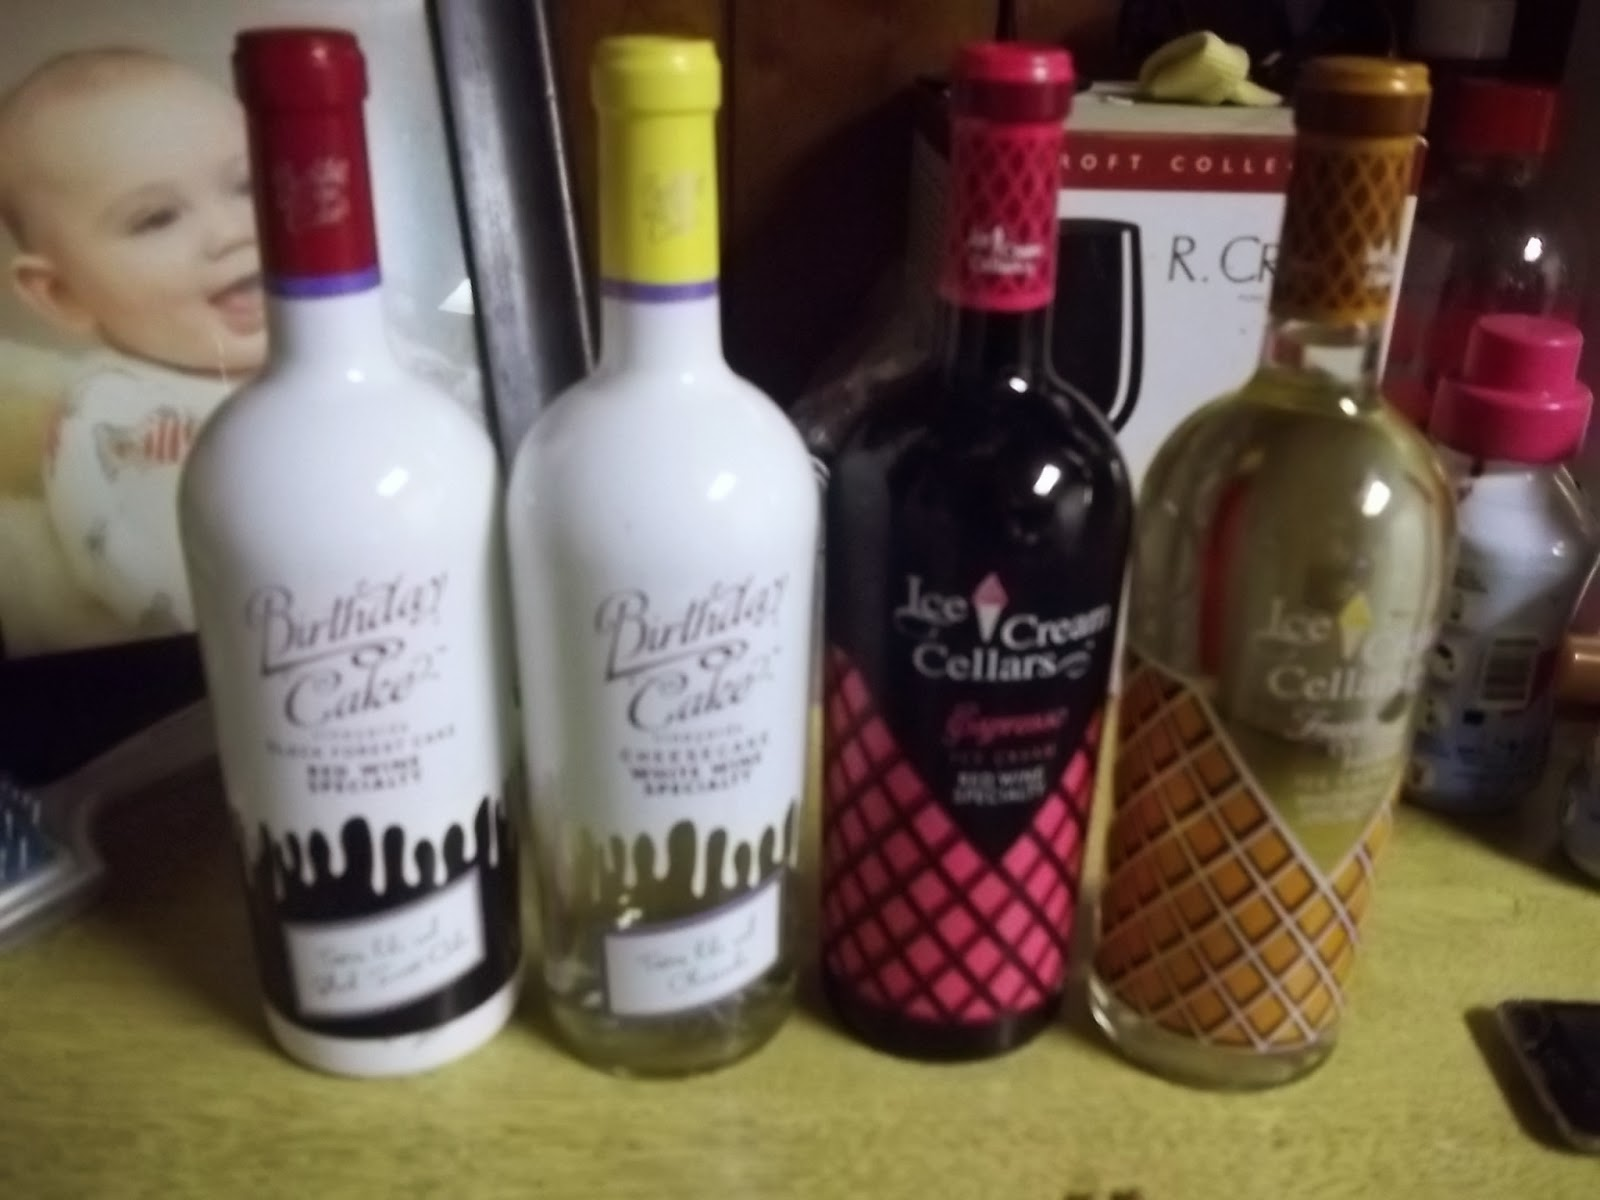 Ice Cream Cellars And Birthday Cake Vineyard Wines Review